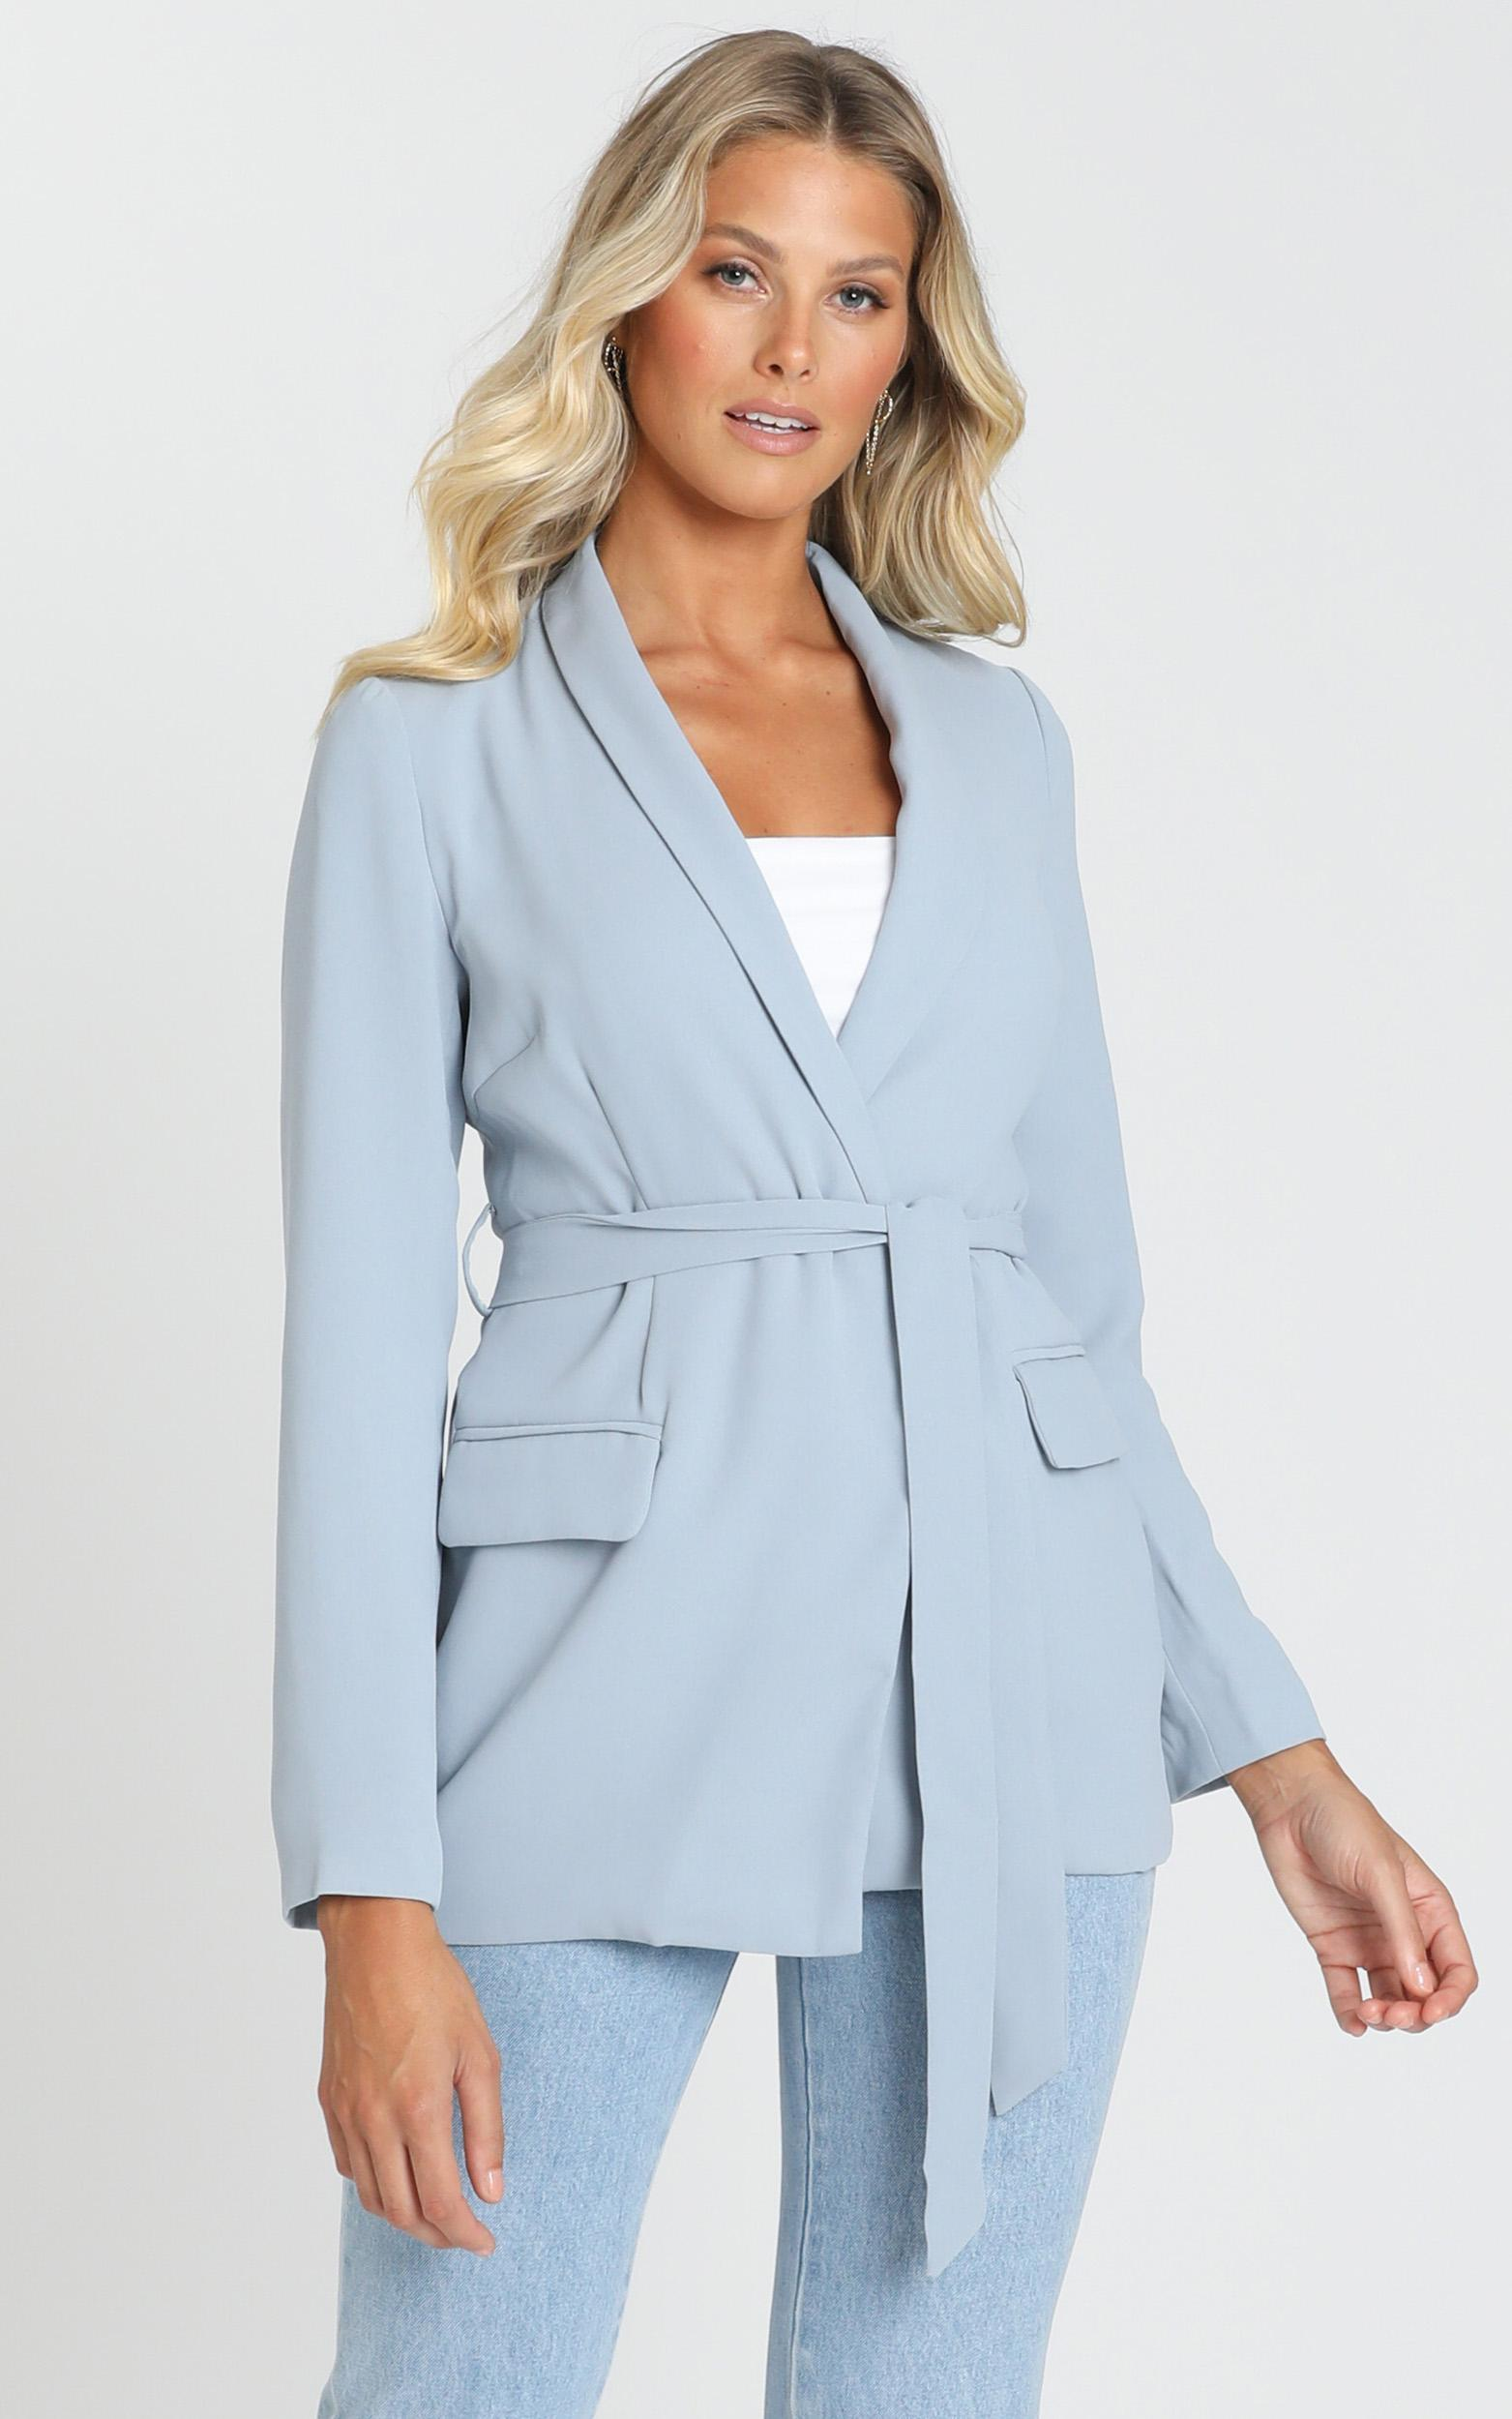 Action Needed Blazer in powder blue - 14 (XL), Blue, hi-res image number null